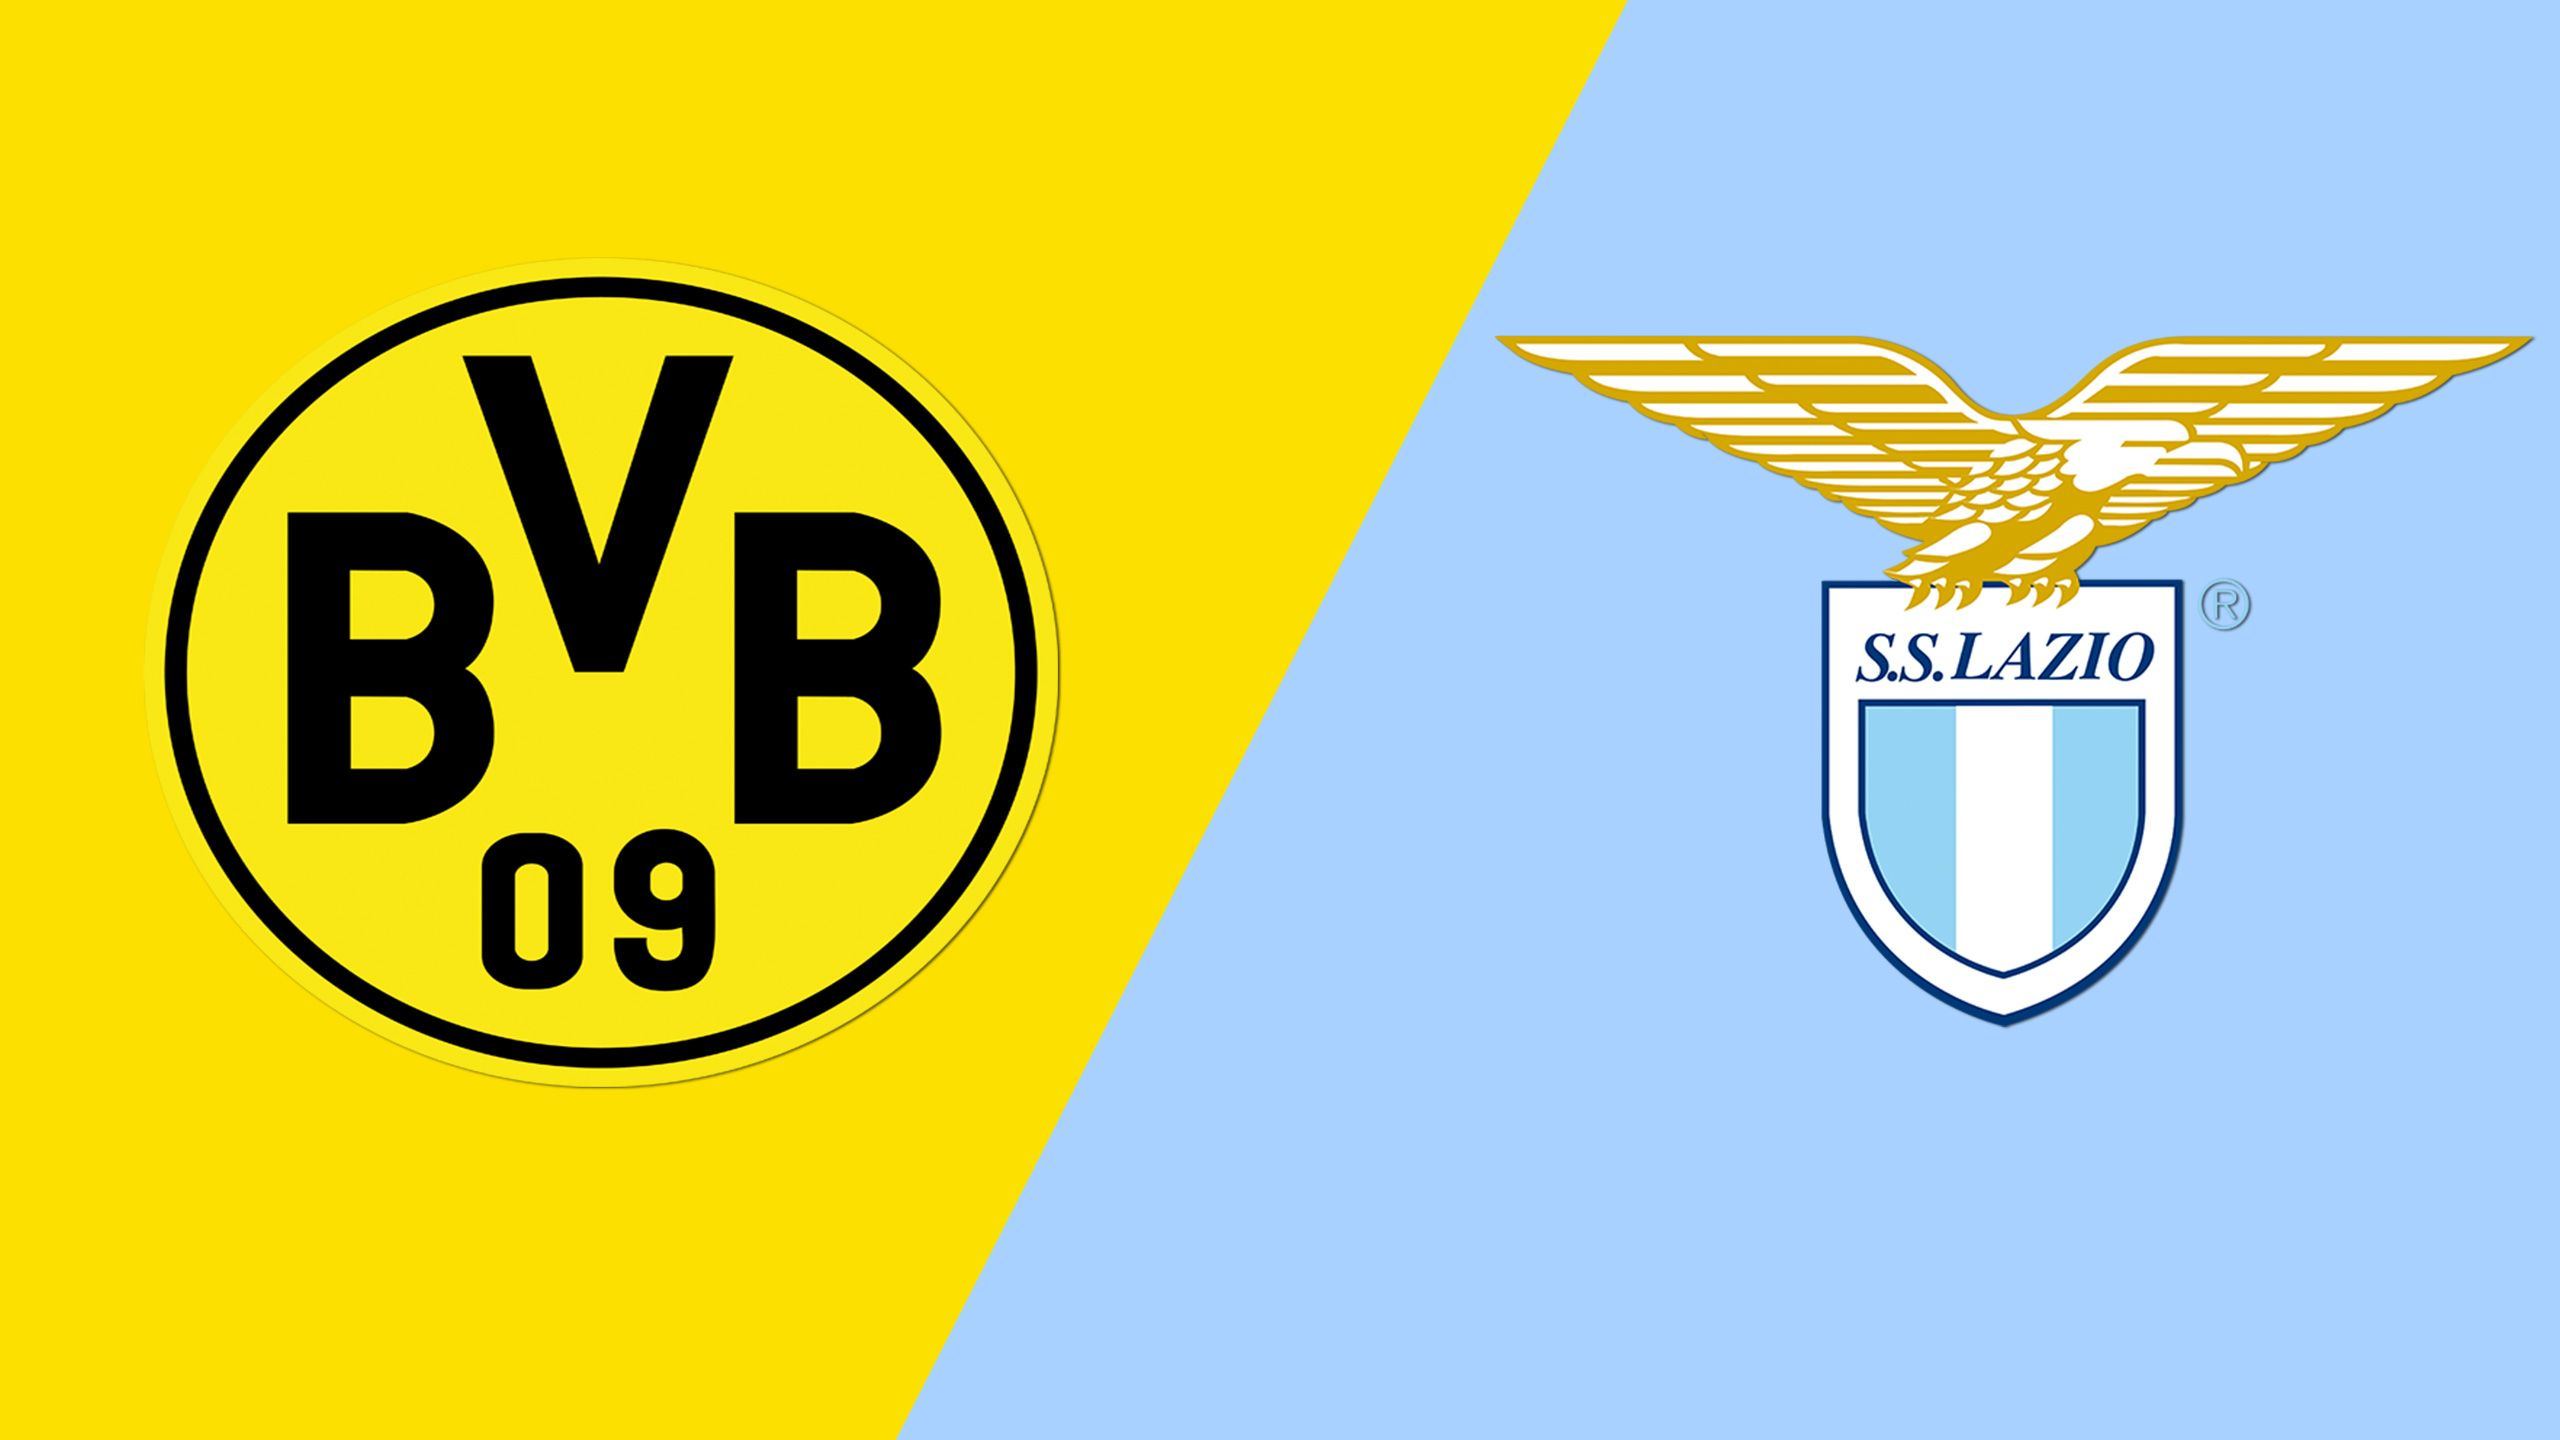 Borussia Dortmund vs. Lazio (International Friendly)